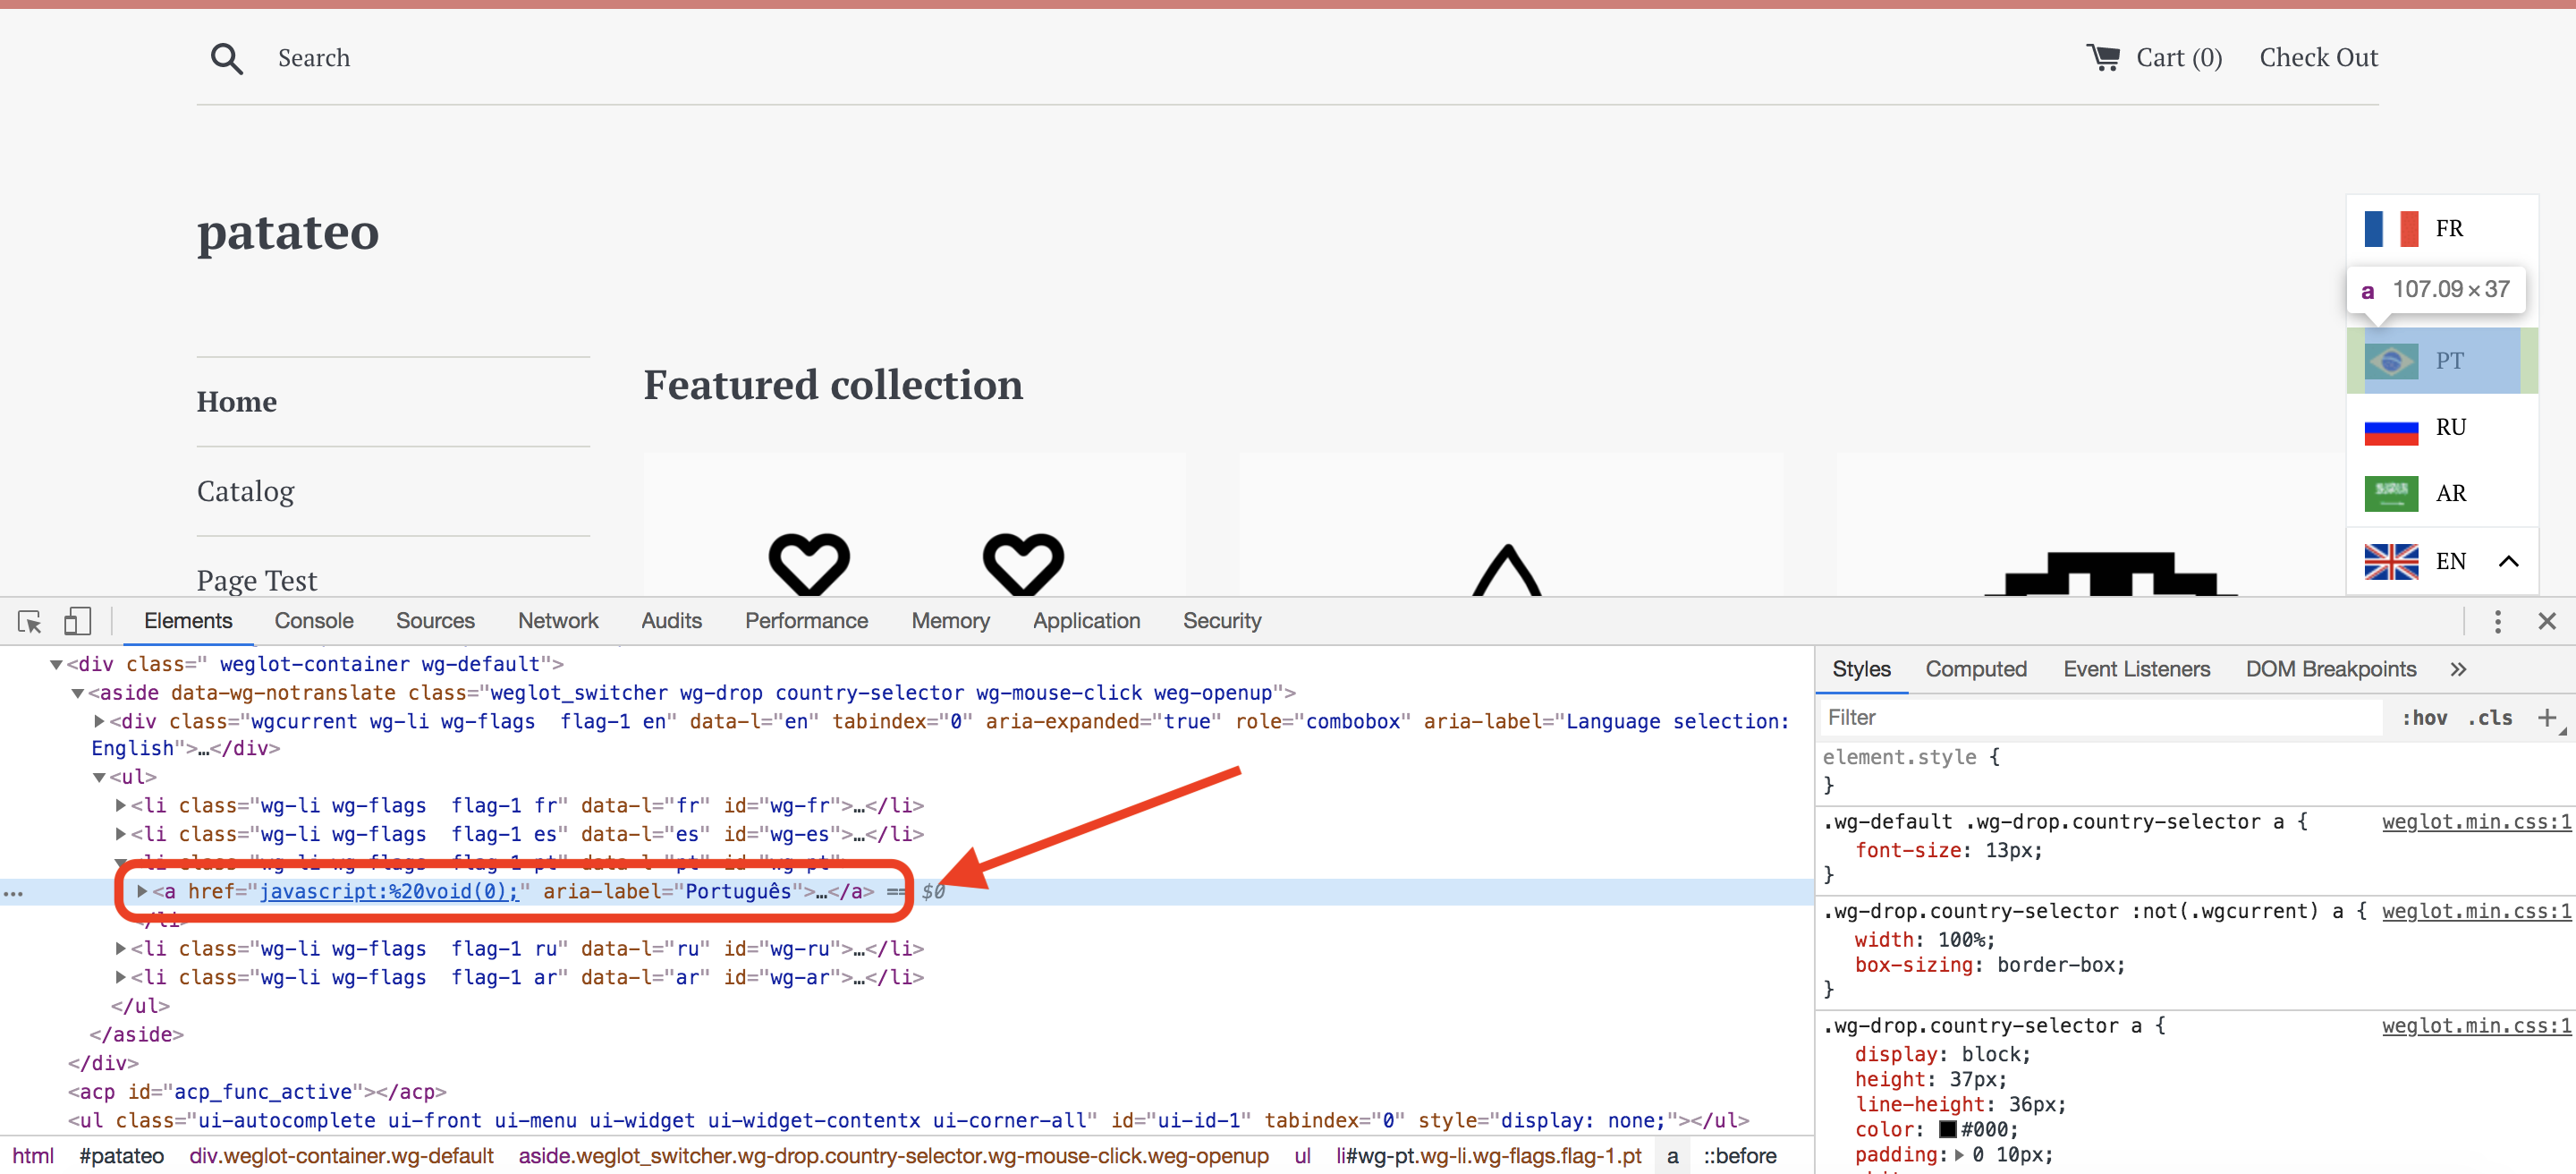 Show Image On Button Click In Javascript